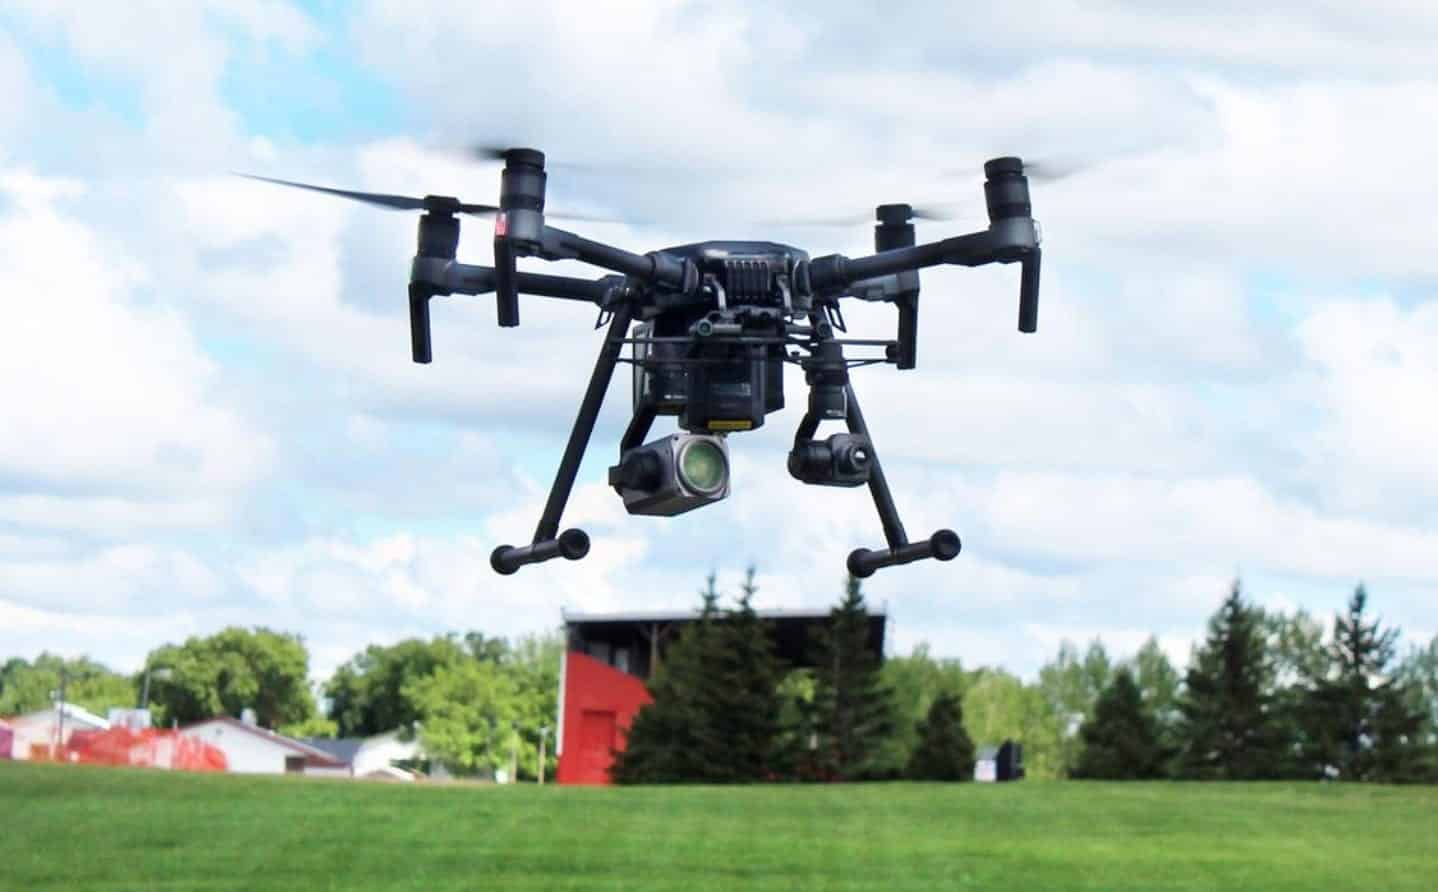 Public invited to share thoughts on police drone use in Douglas County, MN